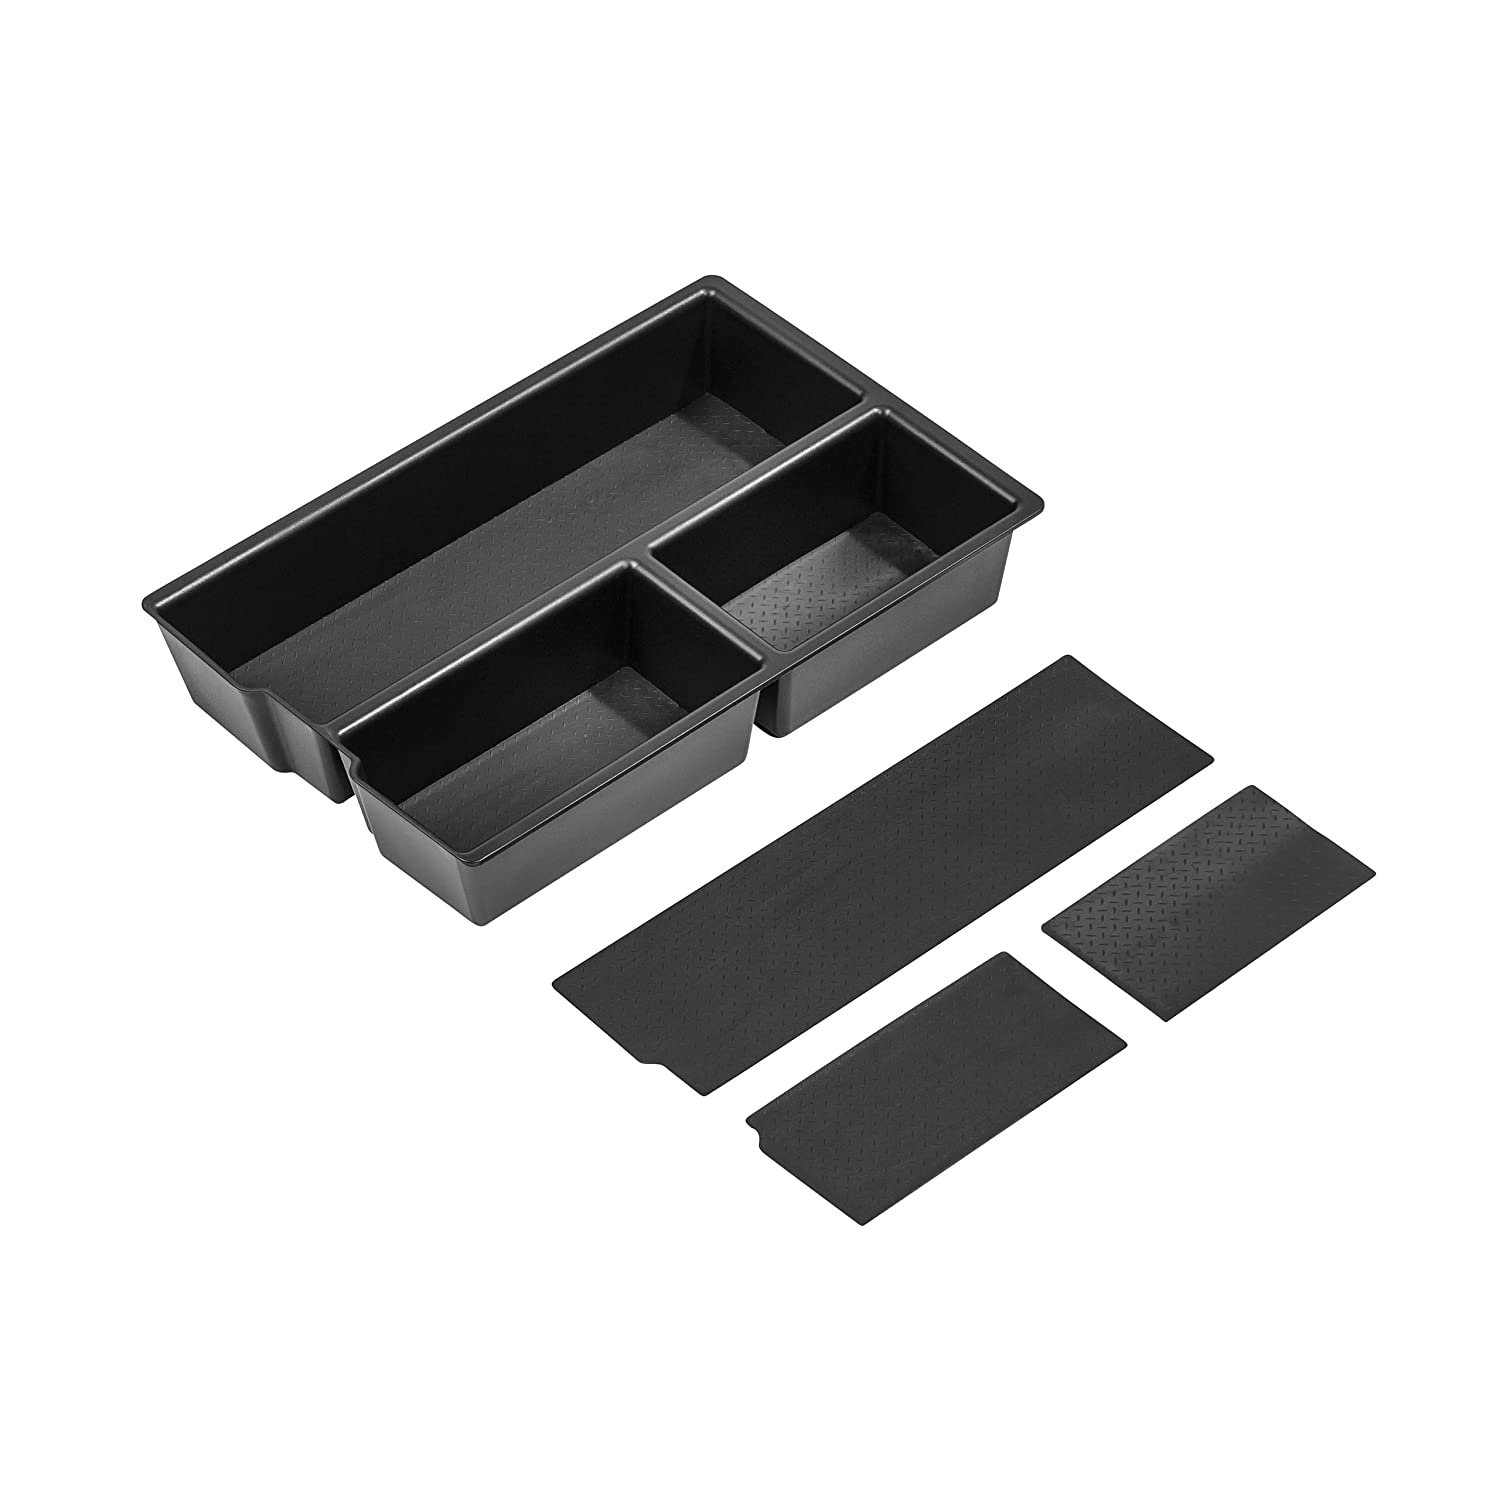 Full Console w//Bucket Seats ONLY and RAM 2500//3500 Vehicle OCD - Made in USA 2010-19 2009-18 Lower Center Console Organizer Tray for Dodge RAM 1500